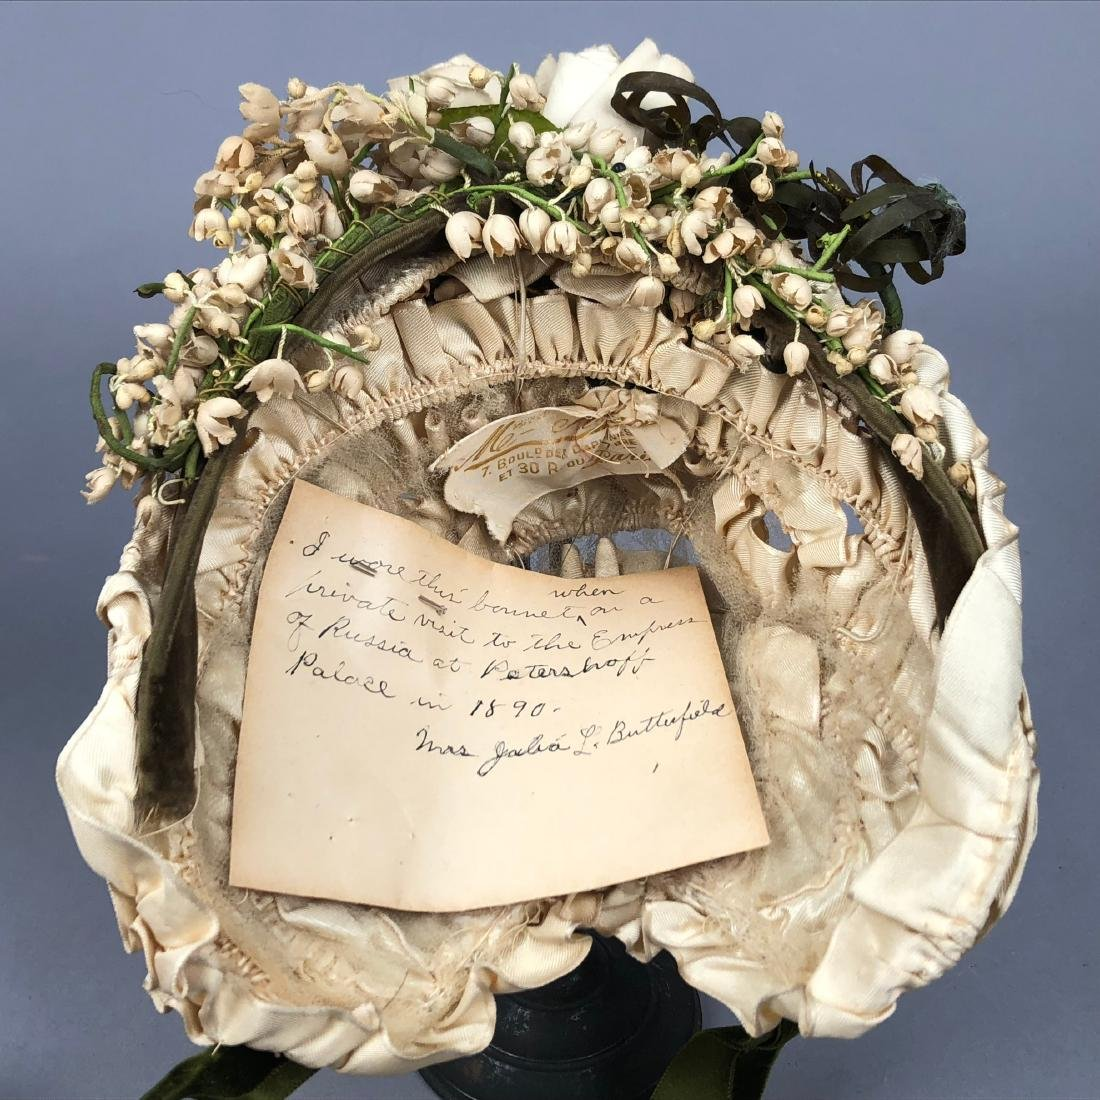 TWO WIRED BONNETS worn by JULIA BUTTERFIELD, 1890 - 5